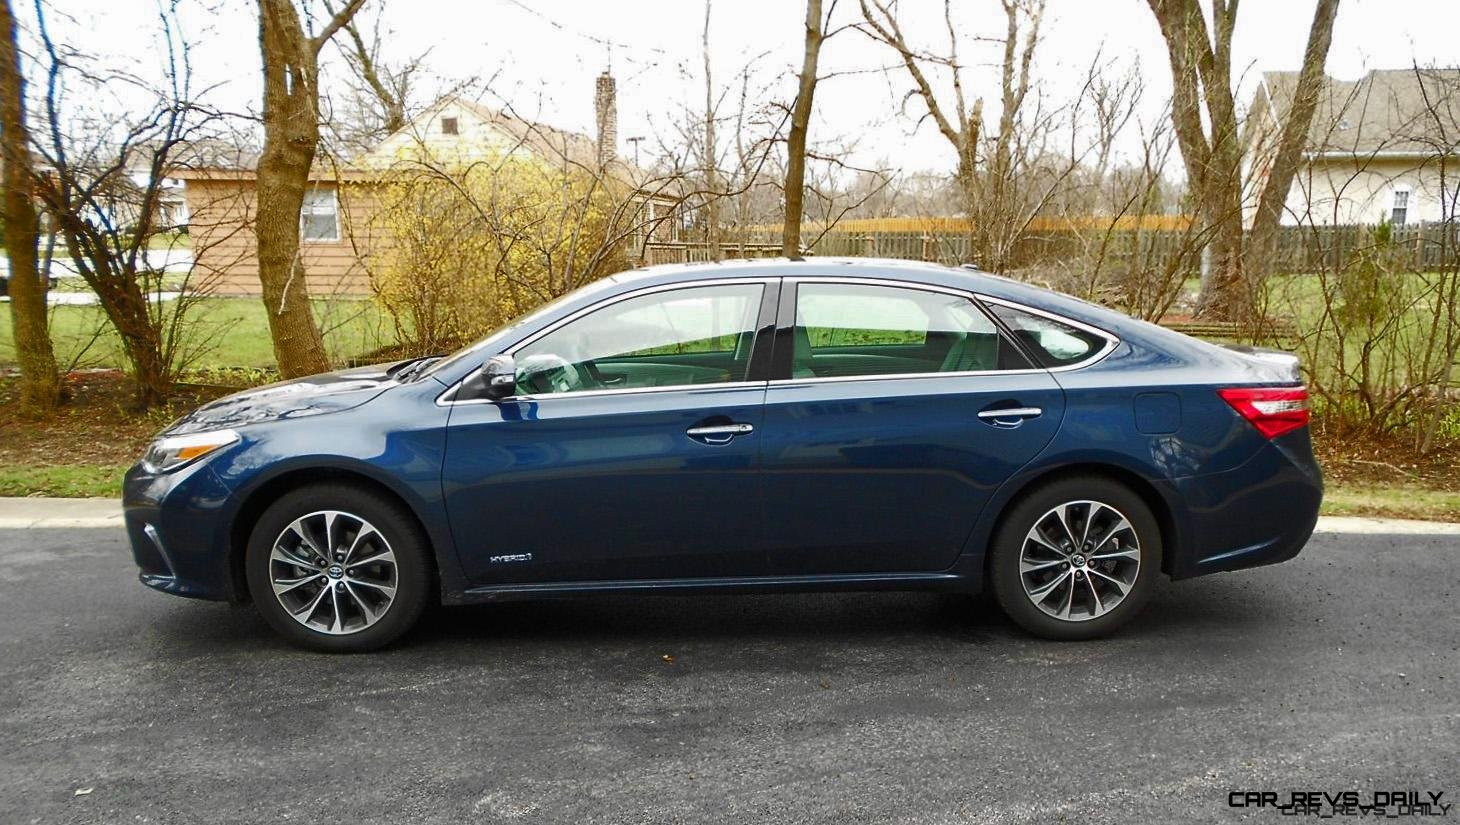 2017 Toyota Avalon Hybrid Xle Premium Road Test Review By Ken Hawkeye Glman Car Ping